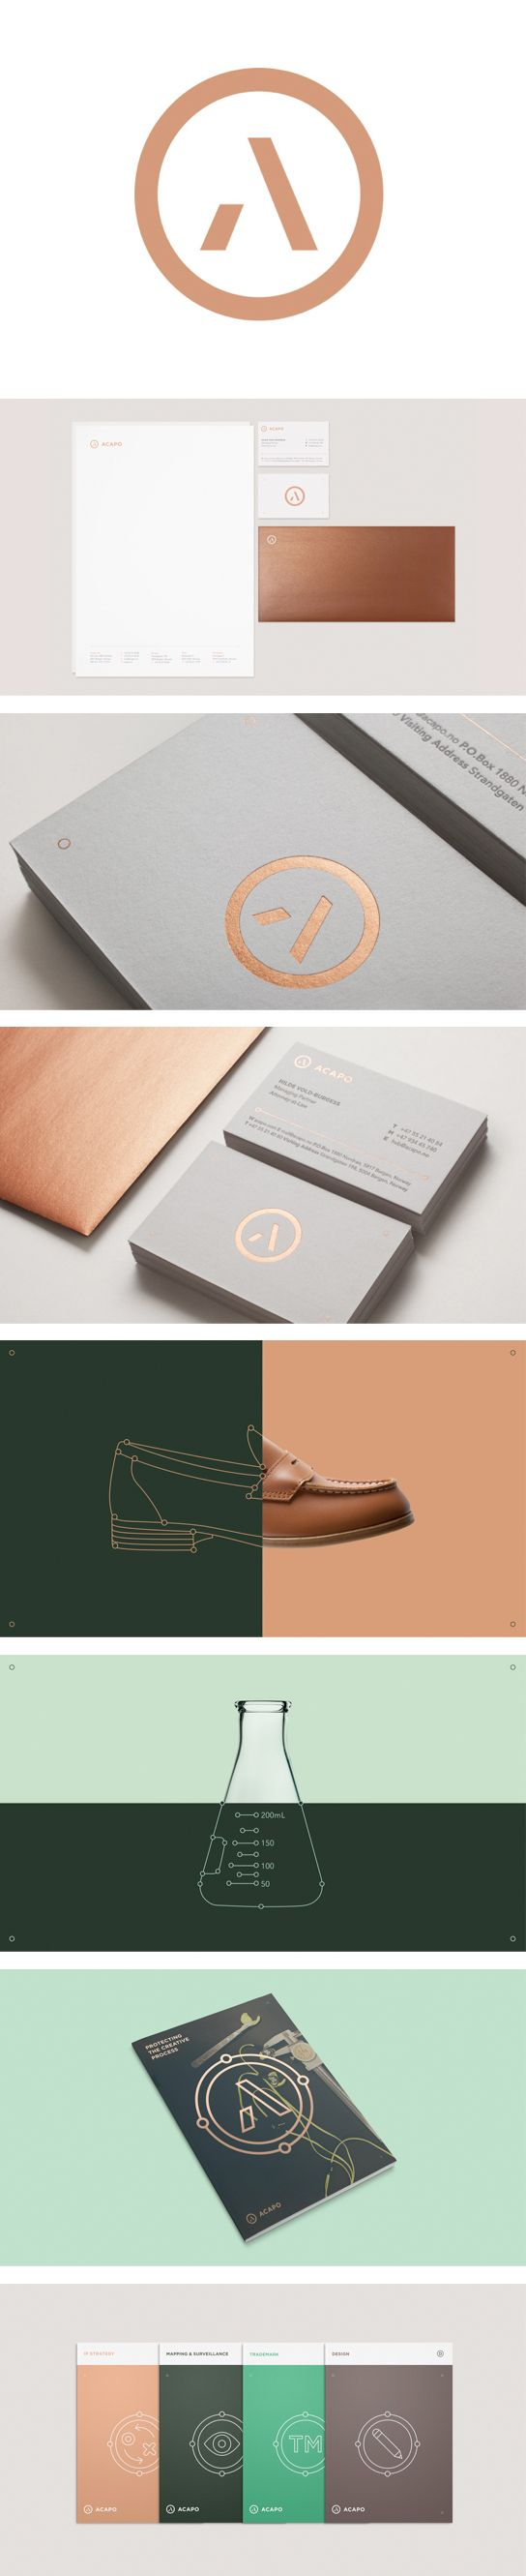 Inspo: Maybe gold & geometric to contrast the muted tones? Acapo, Law Firm | Visual Identity by by Anti